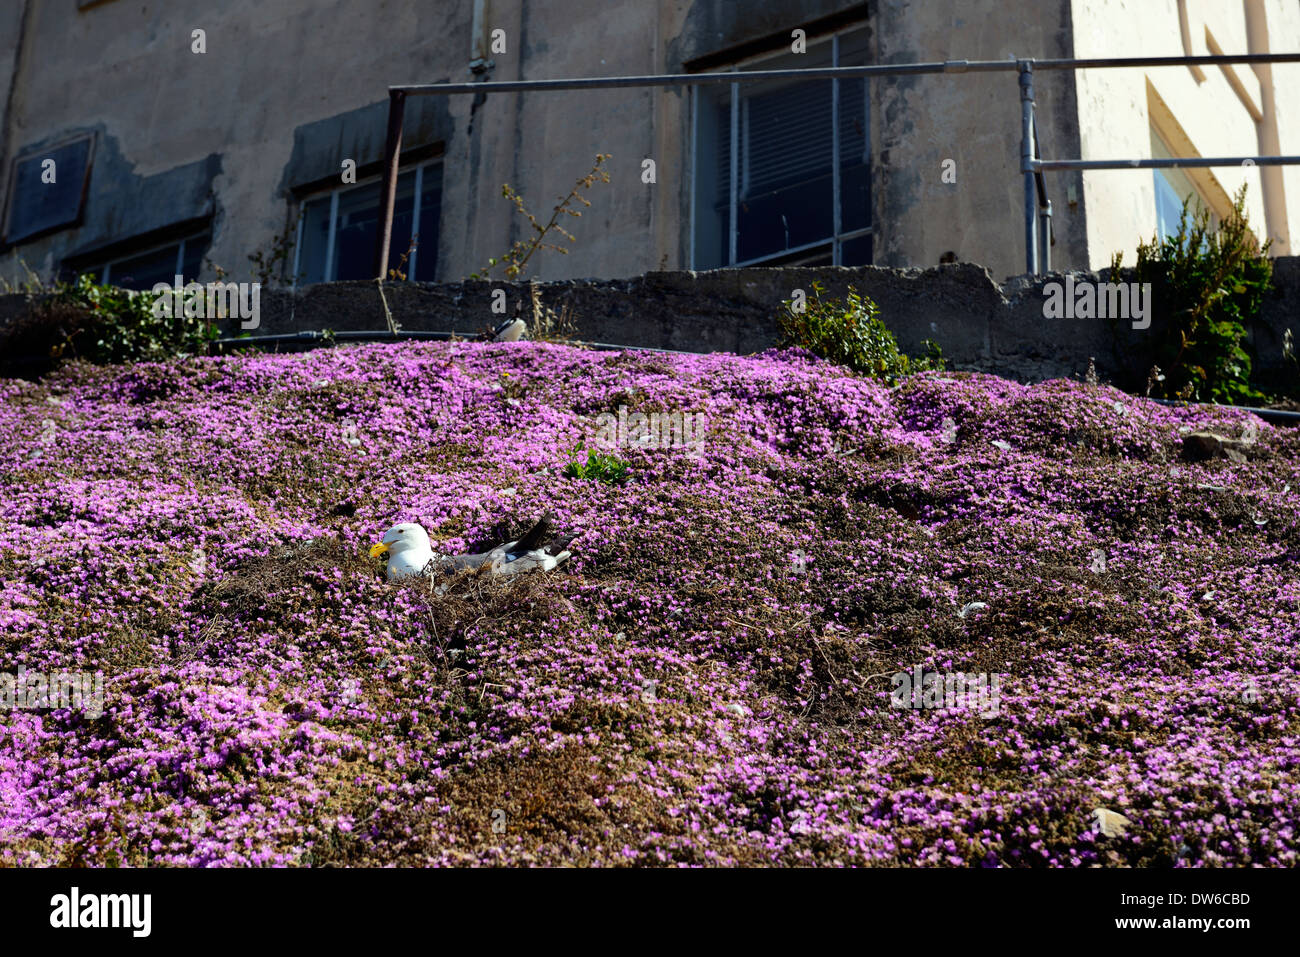 Drosanthemum stock photos drosanthemum stock images alamy seagull nesting nest dense drosanthemum floribundum pink flowers groundcover ground cover showy dewflower rosea mightylinksfo Image collections